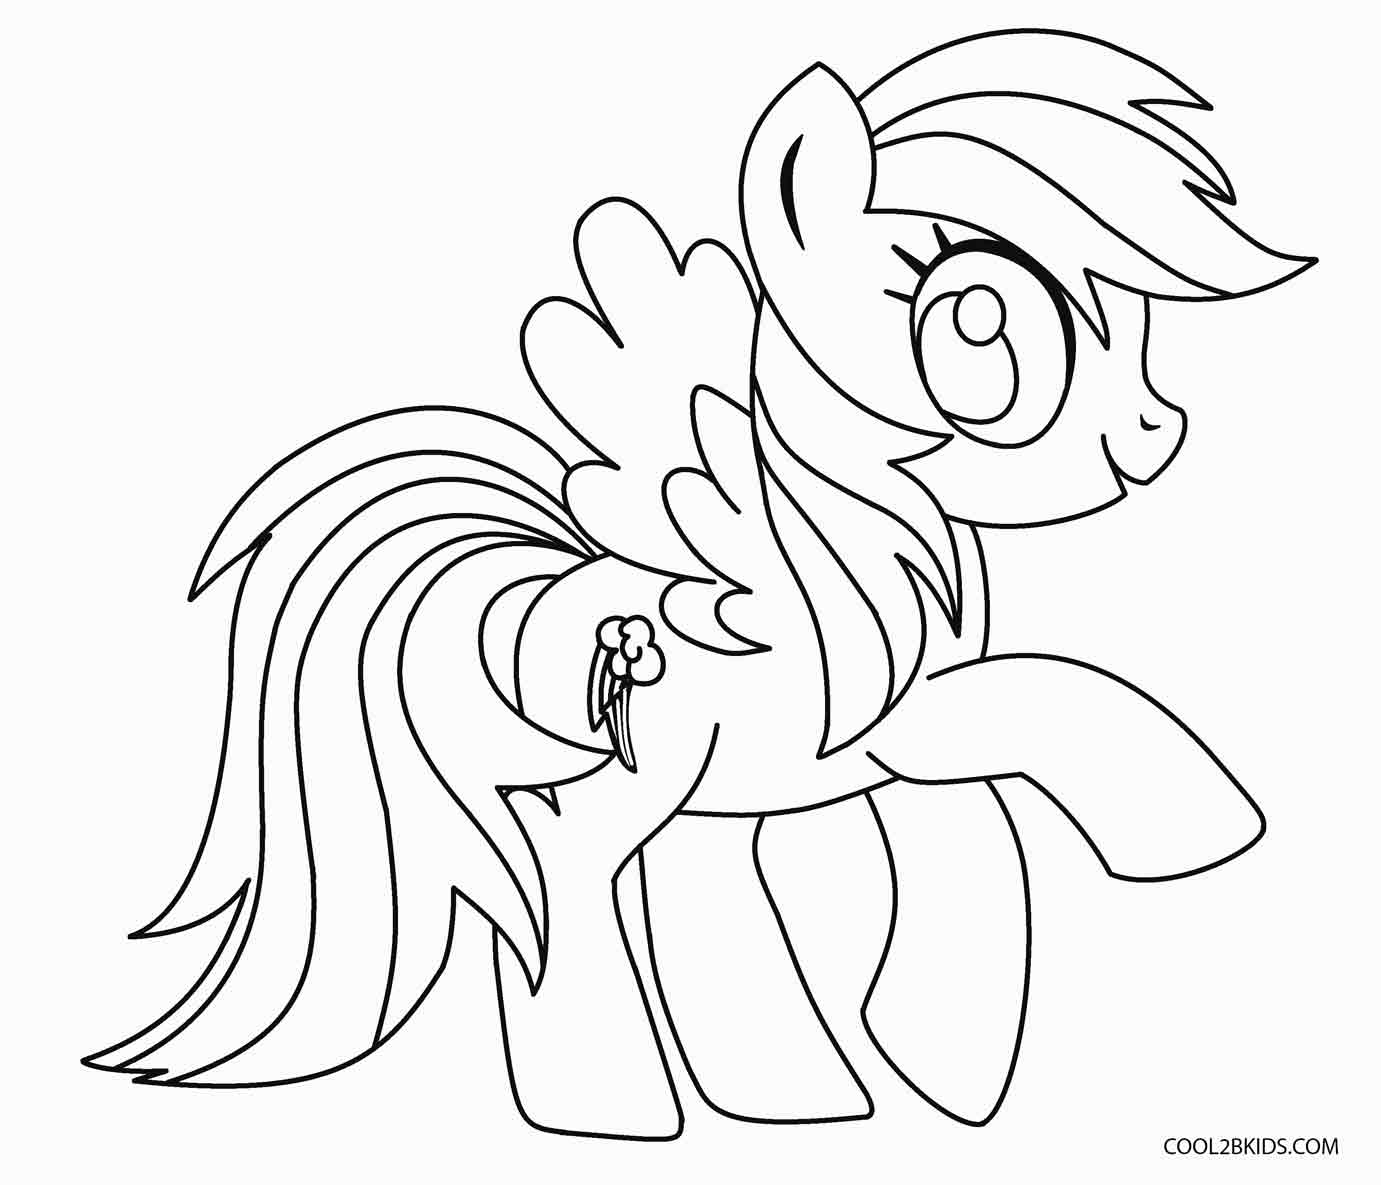 printable my little pony my little pony coloring pages printable activity shelter pony my little printable